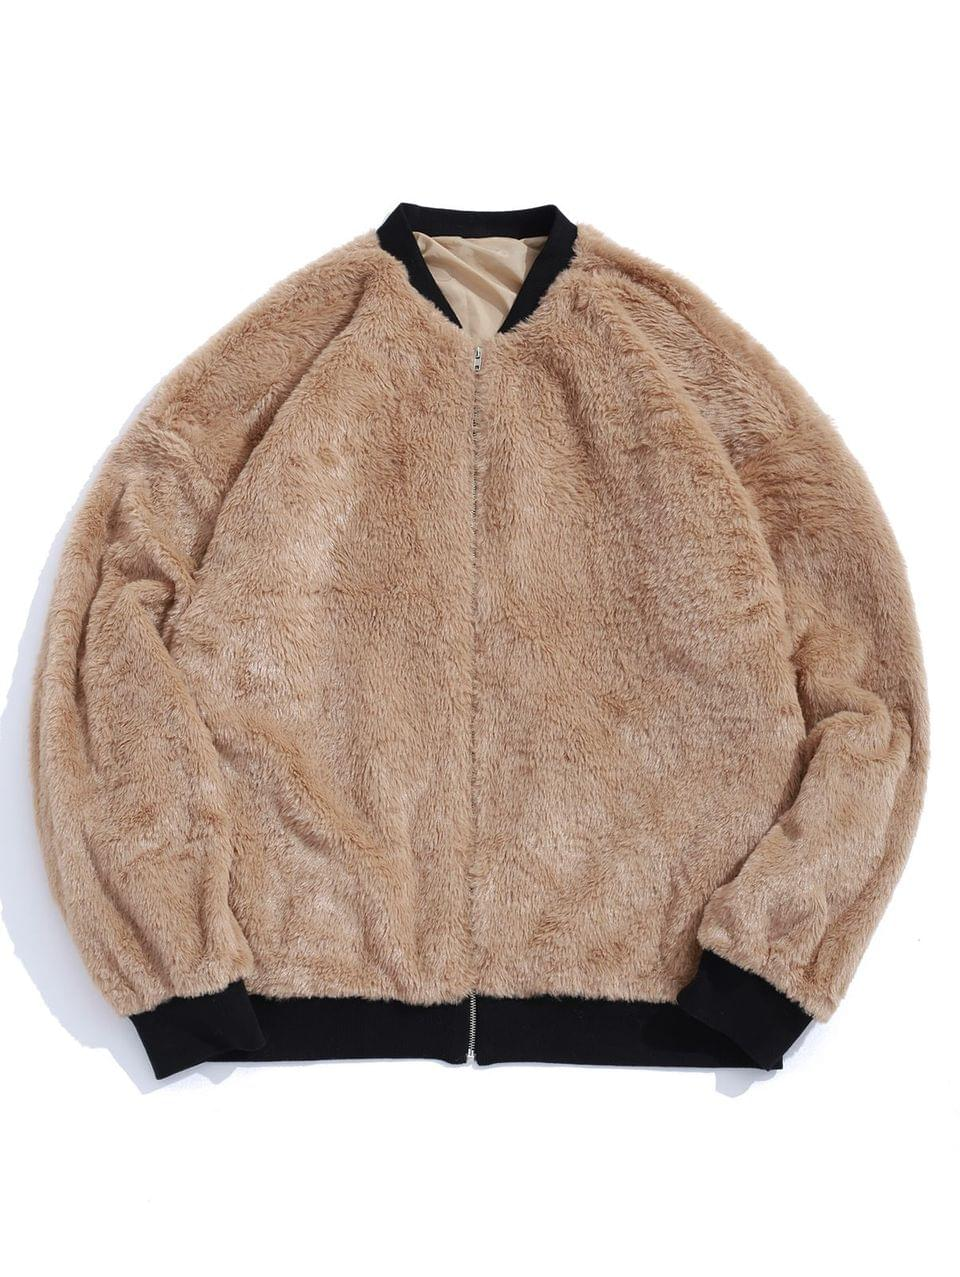 Men's Contrast Zip Up Faux Fur Jacket - Tan Xl